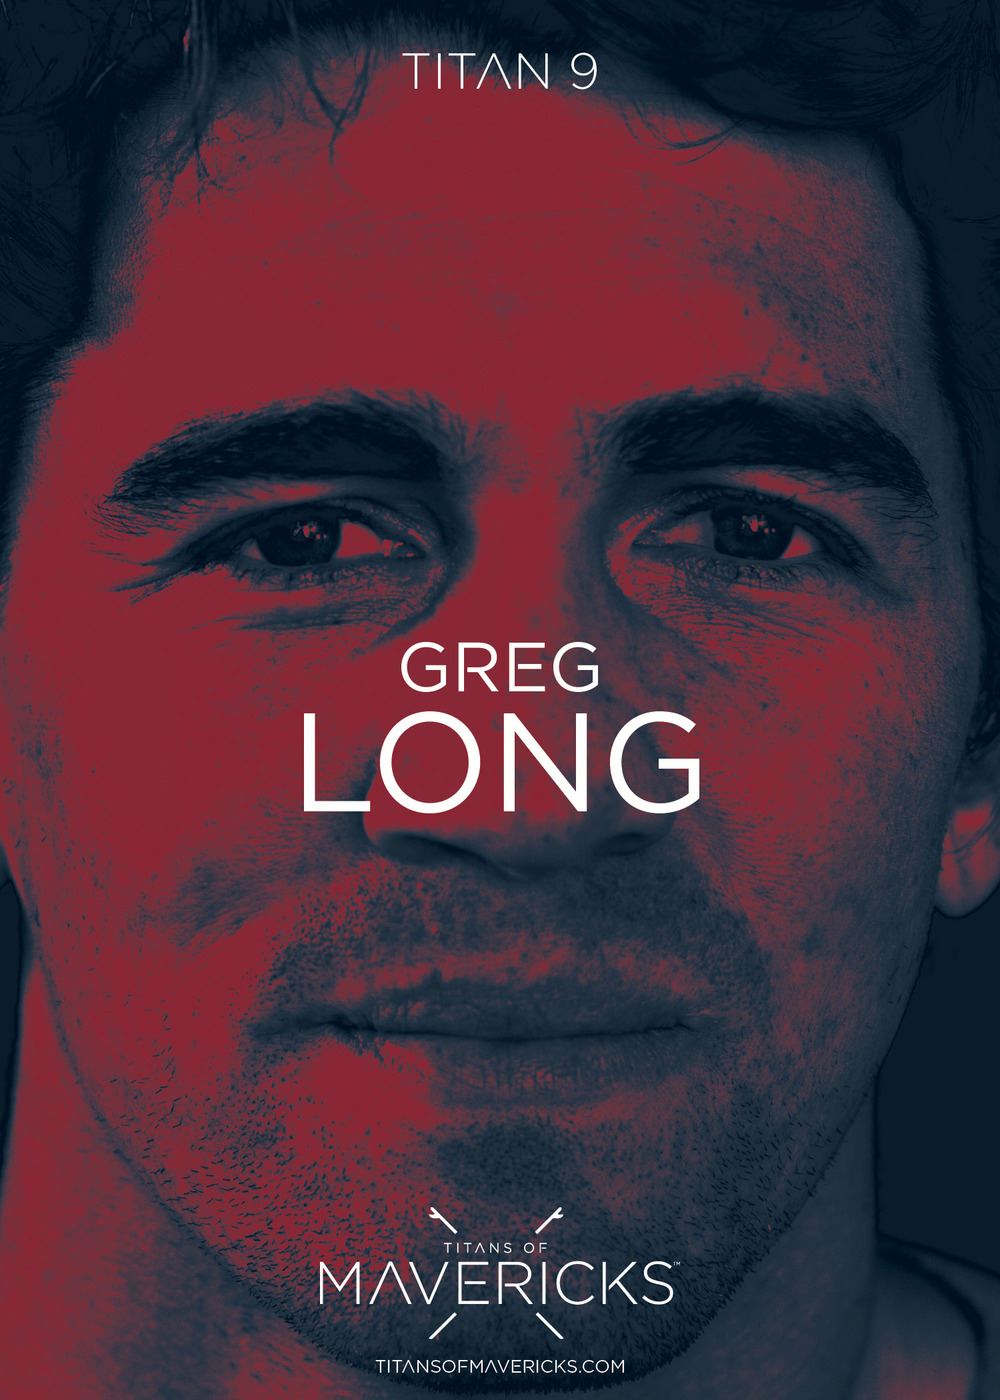 Competitor Poster: Greg Long